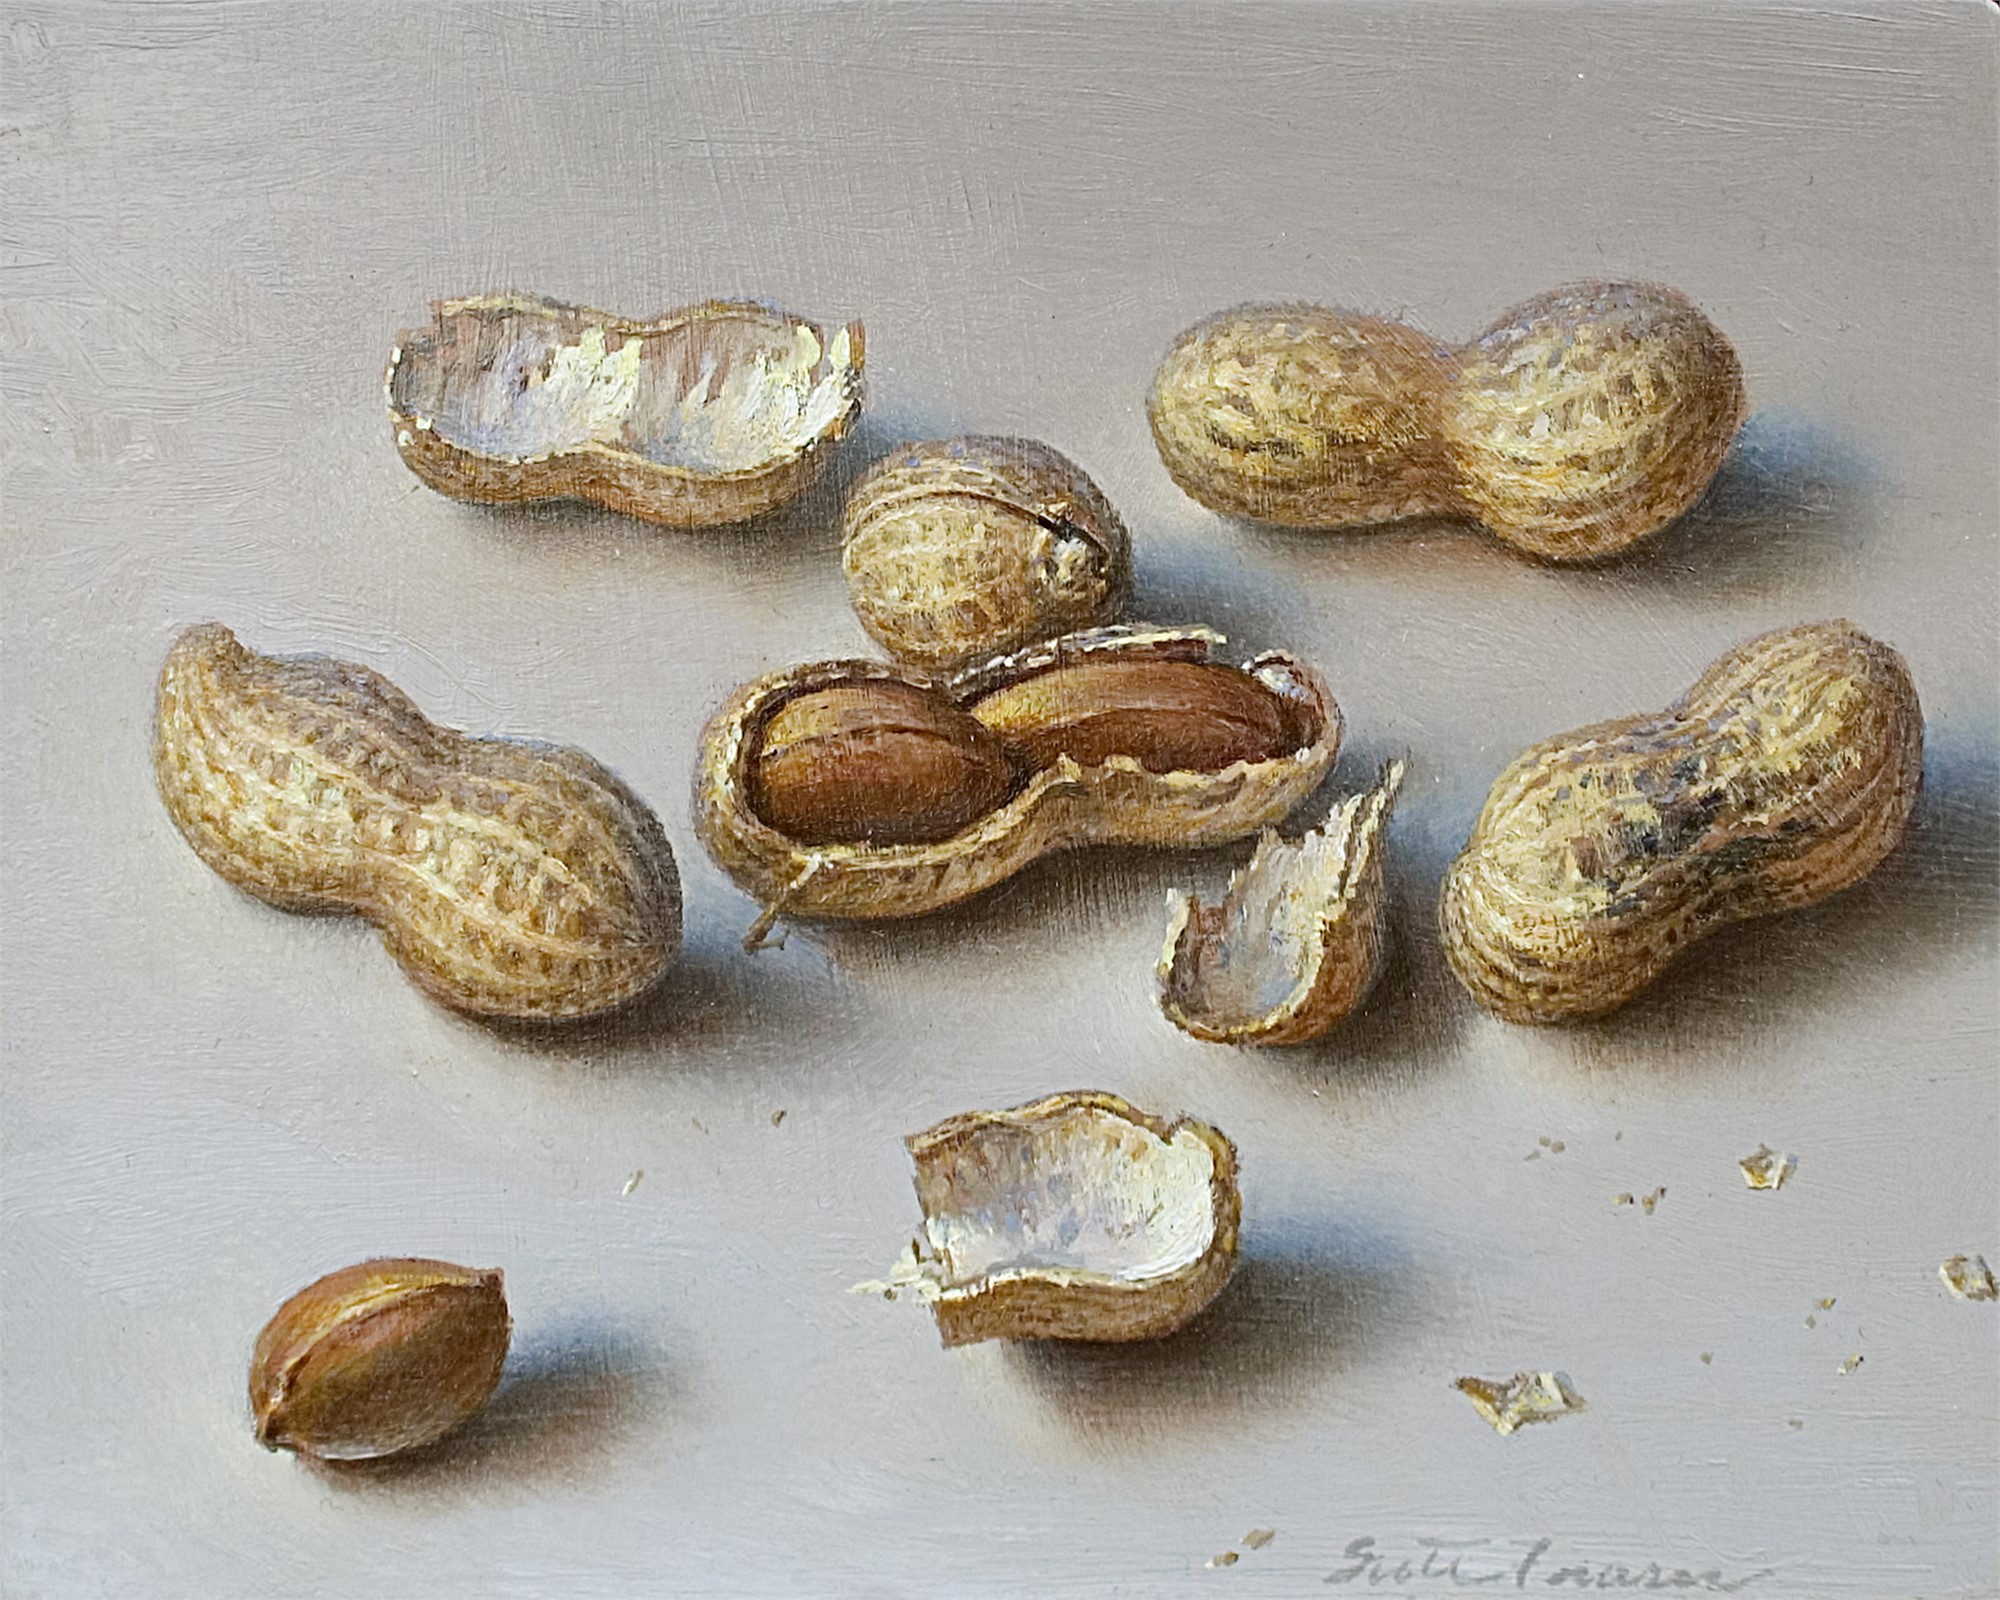 Light Peanuts by Scott Fraser